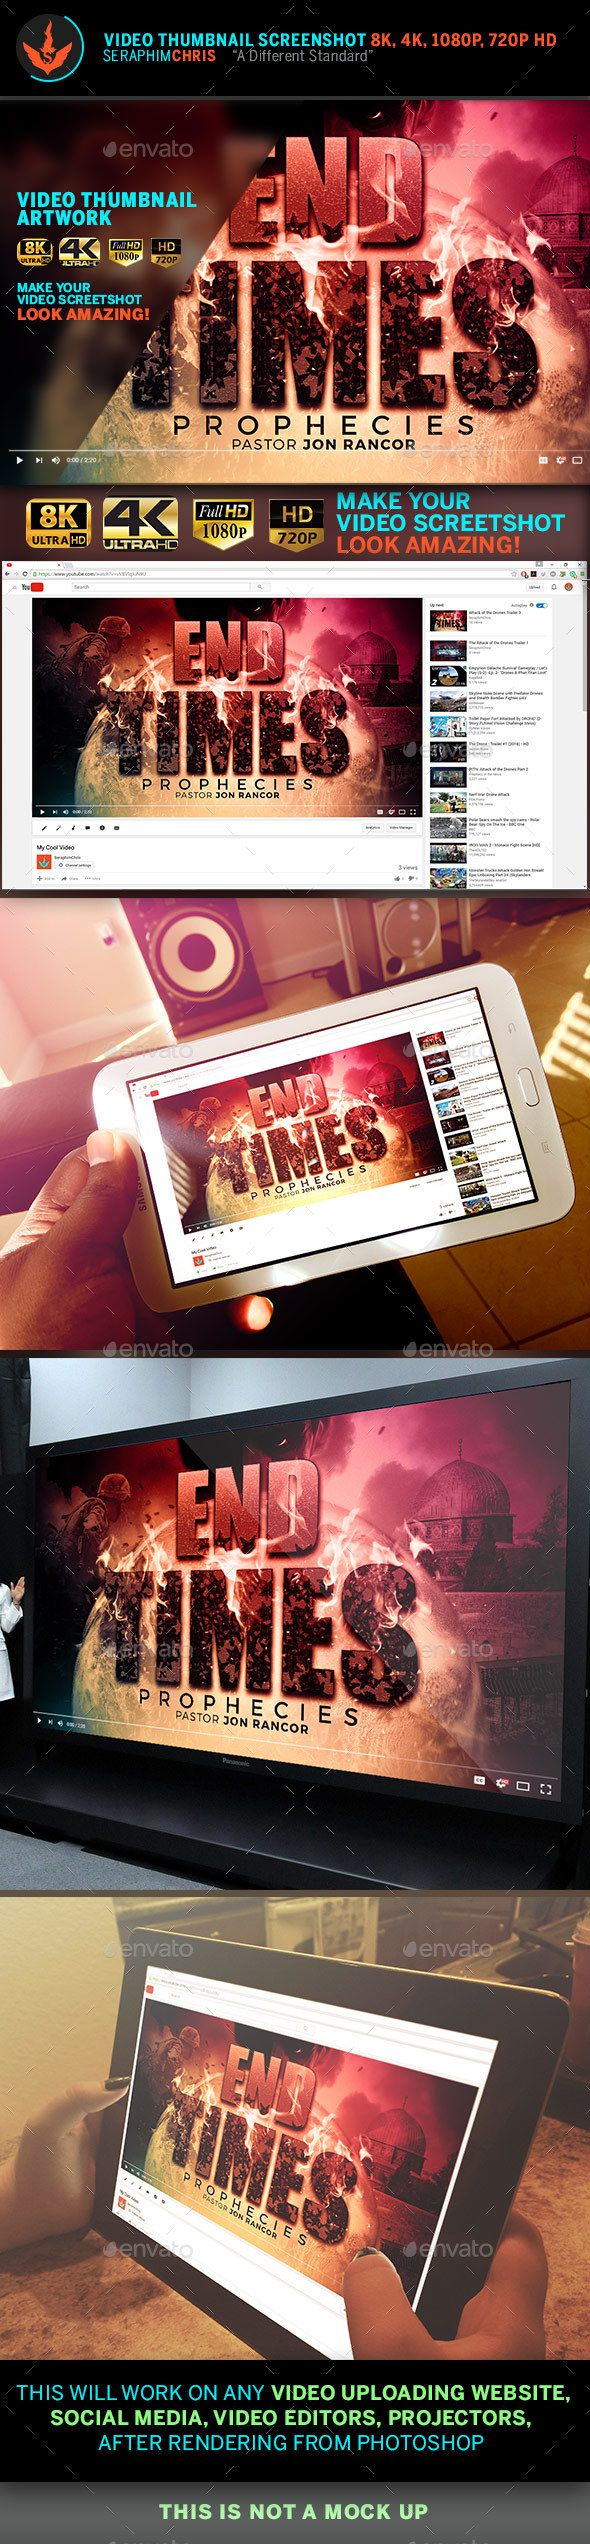 Photoshop poster design youtube - End Time Prophecies Youtube Thumbnail Screenshot Template